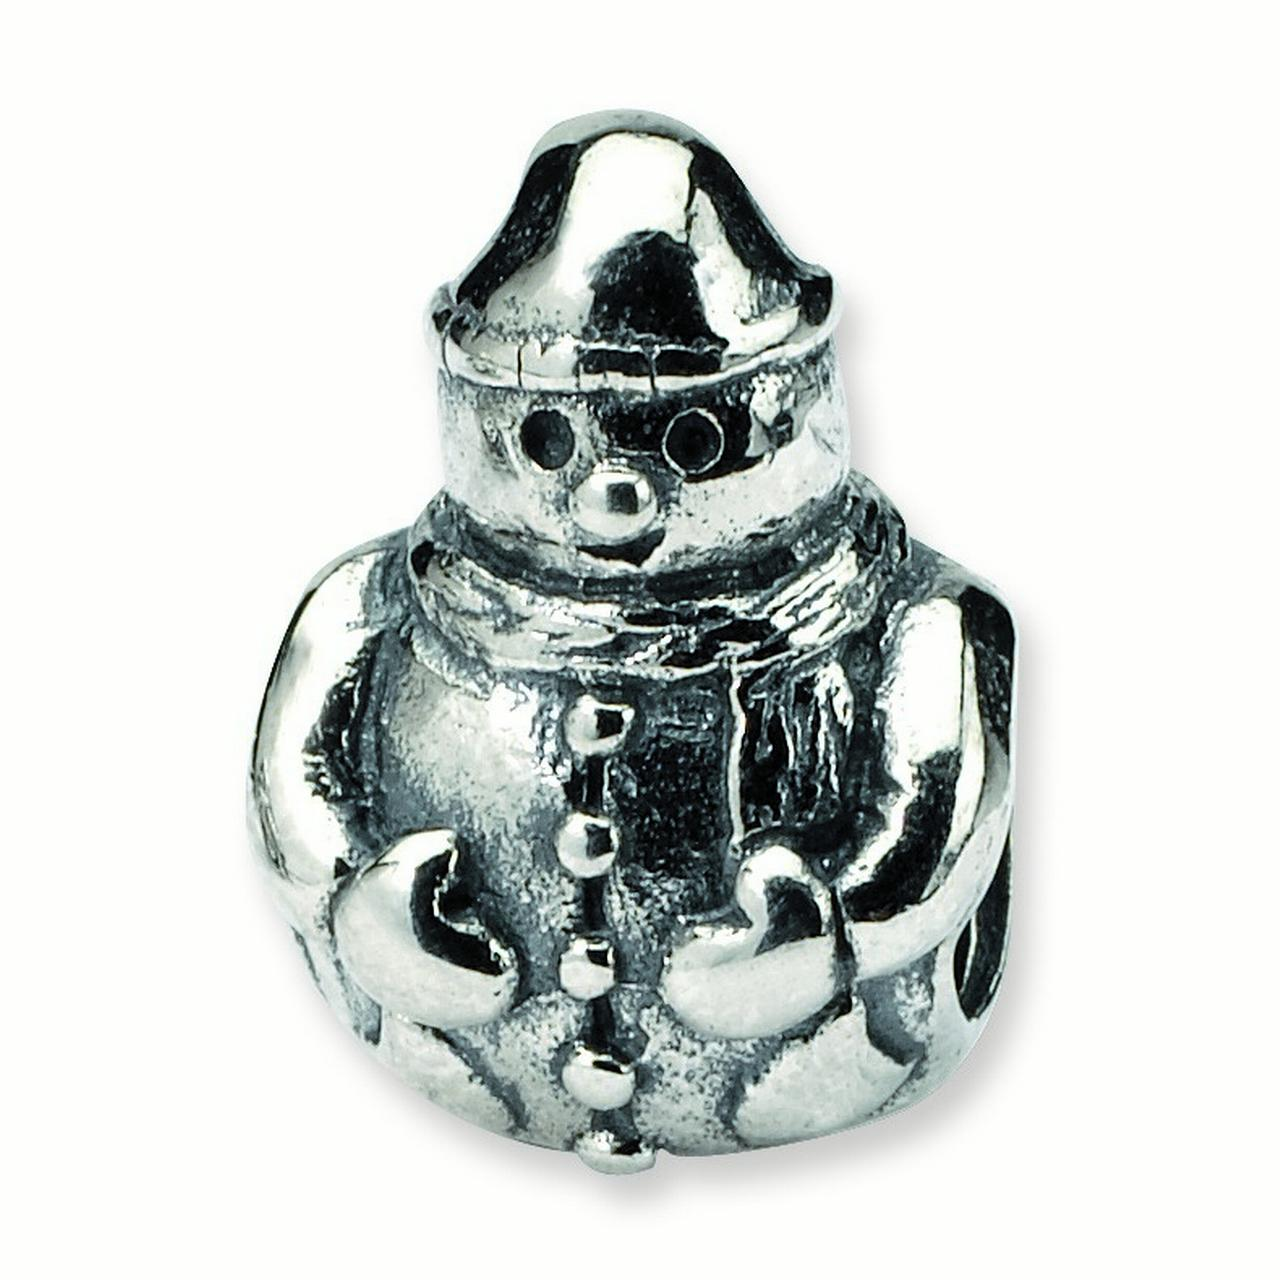 Snowman Charm in Silver for 3mm Charm Bracelets